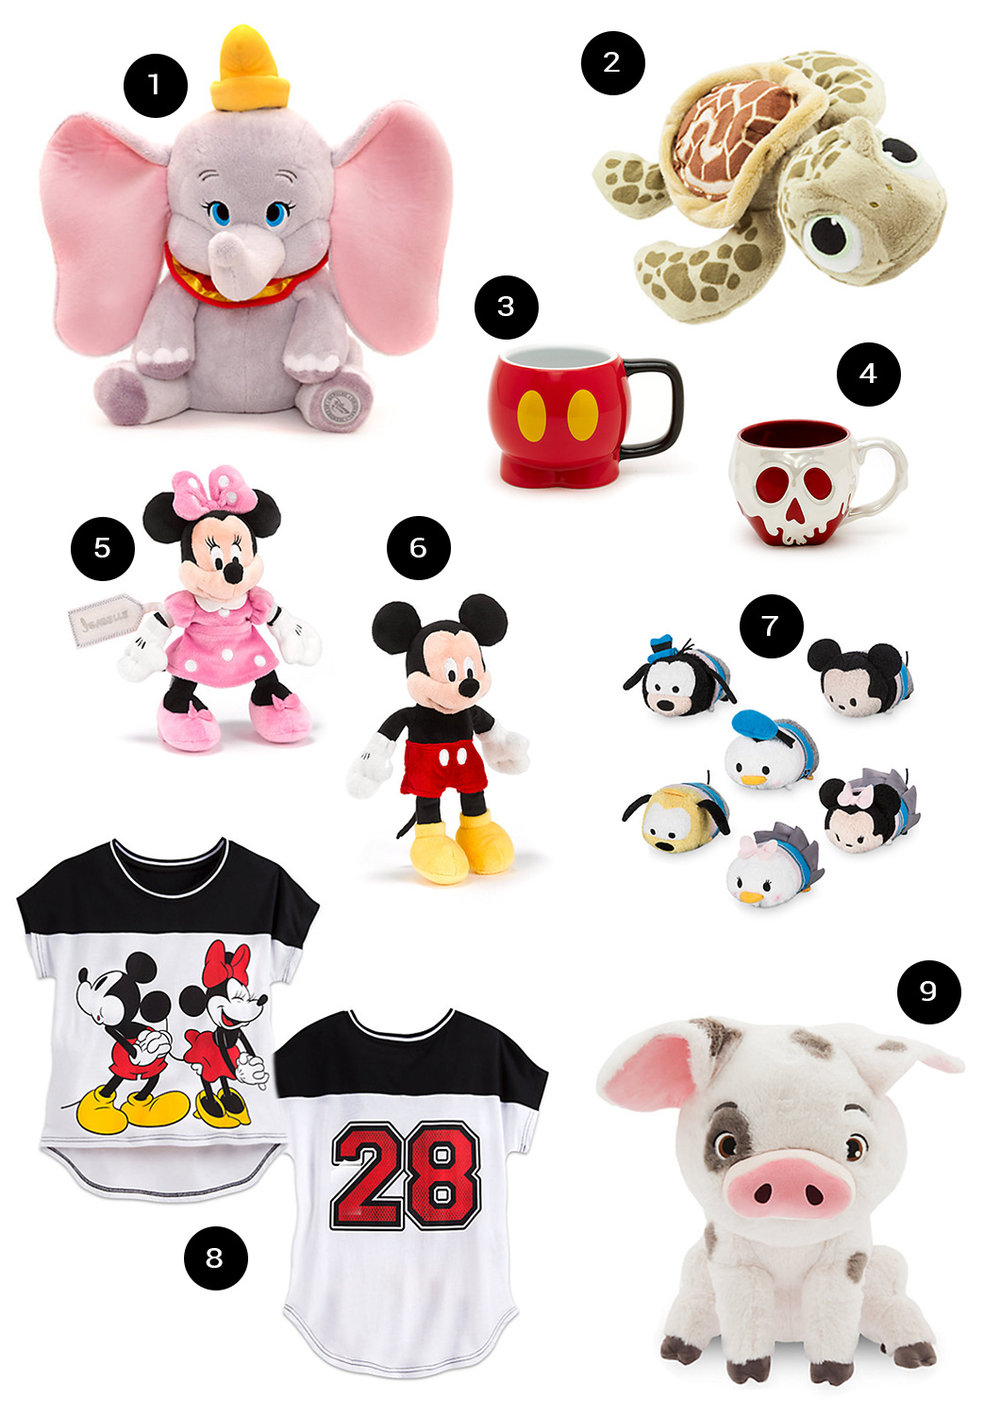 Photos from The Disney Store website.